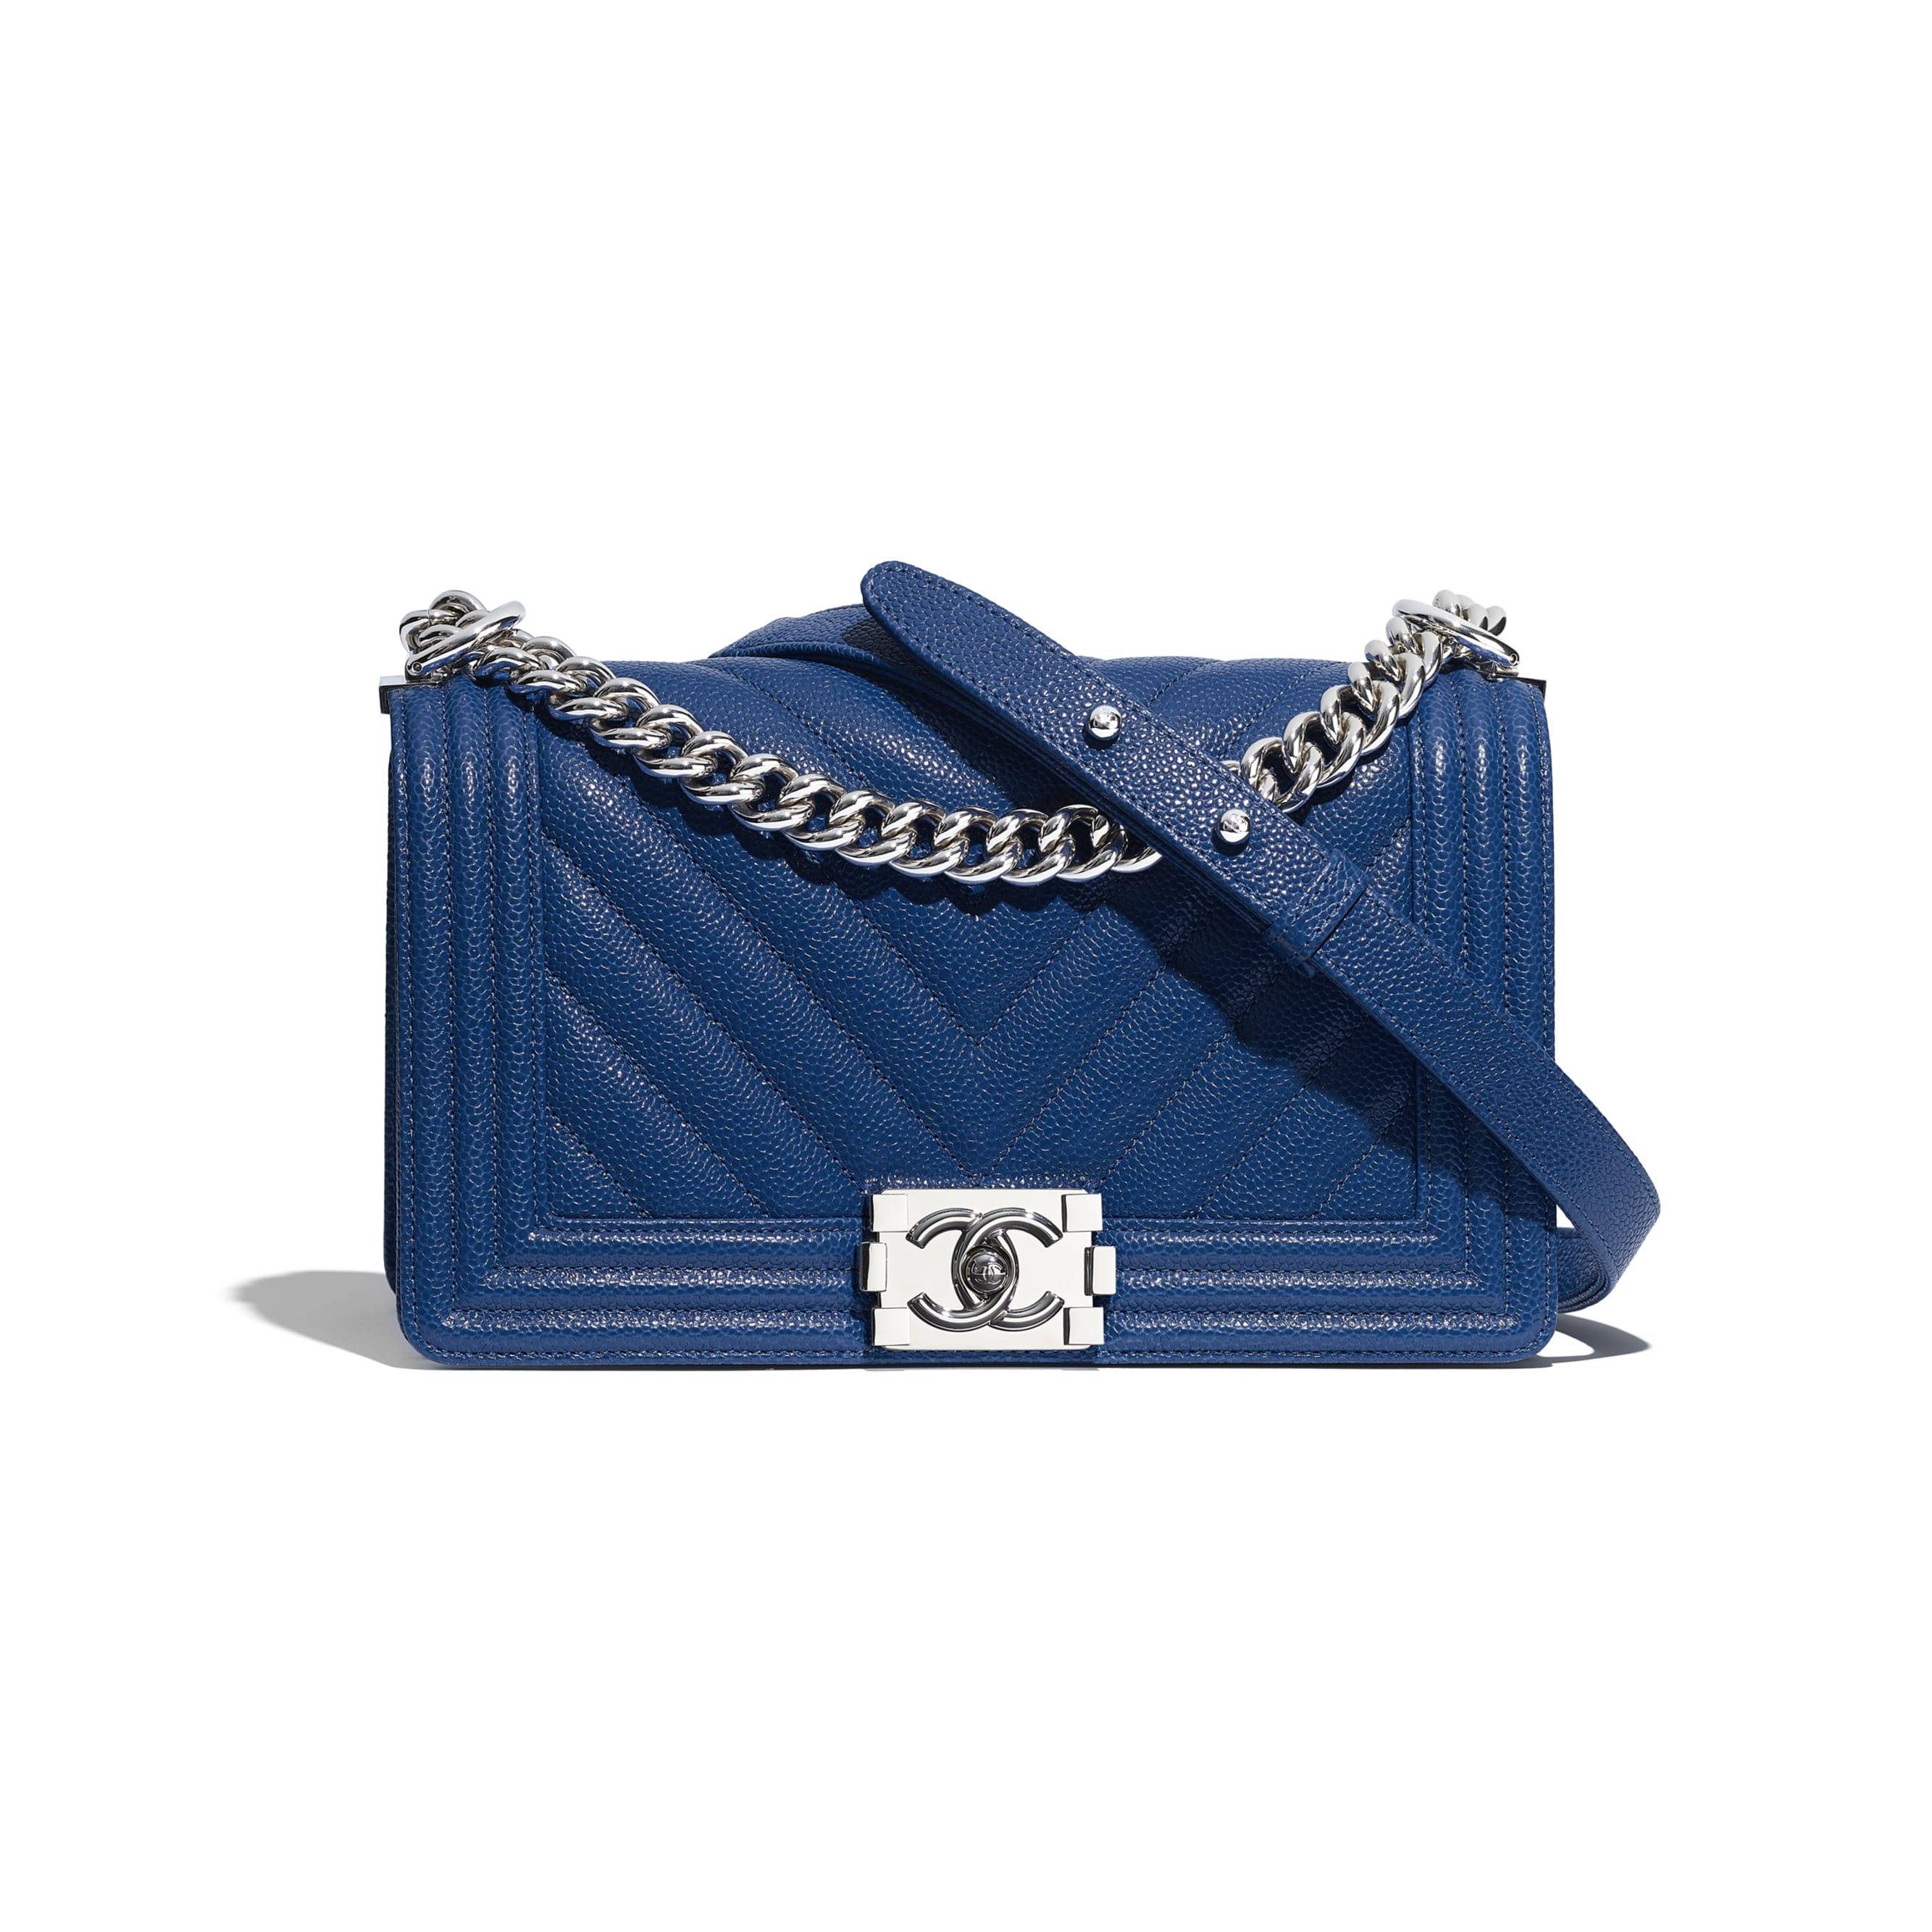 BOY CHANEL Handbag - Dark Blue - Grained Calfskin & Silver Metal - Default view - see standard sized version